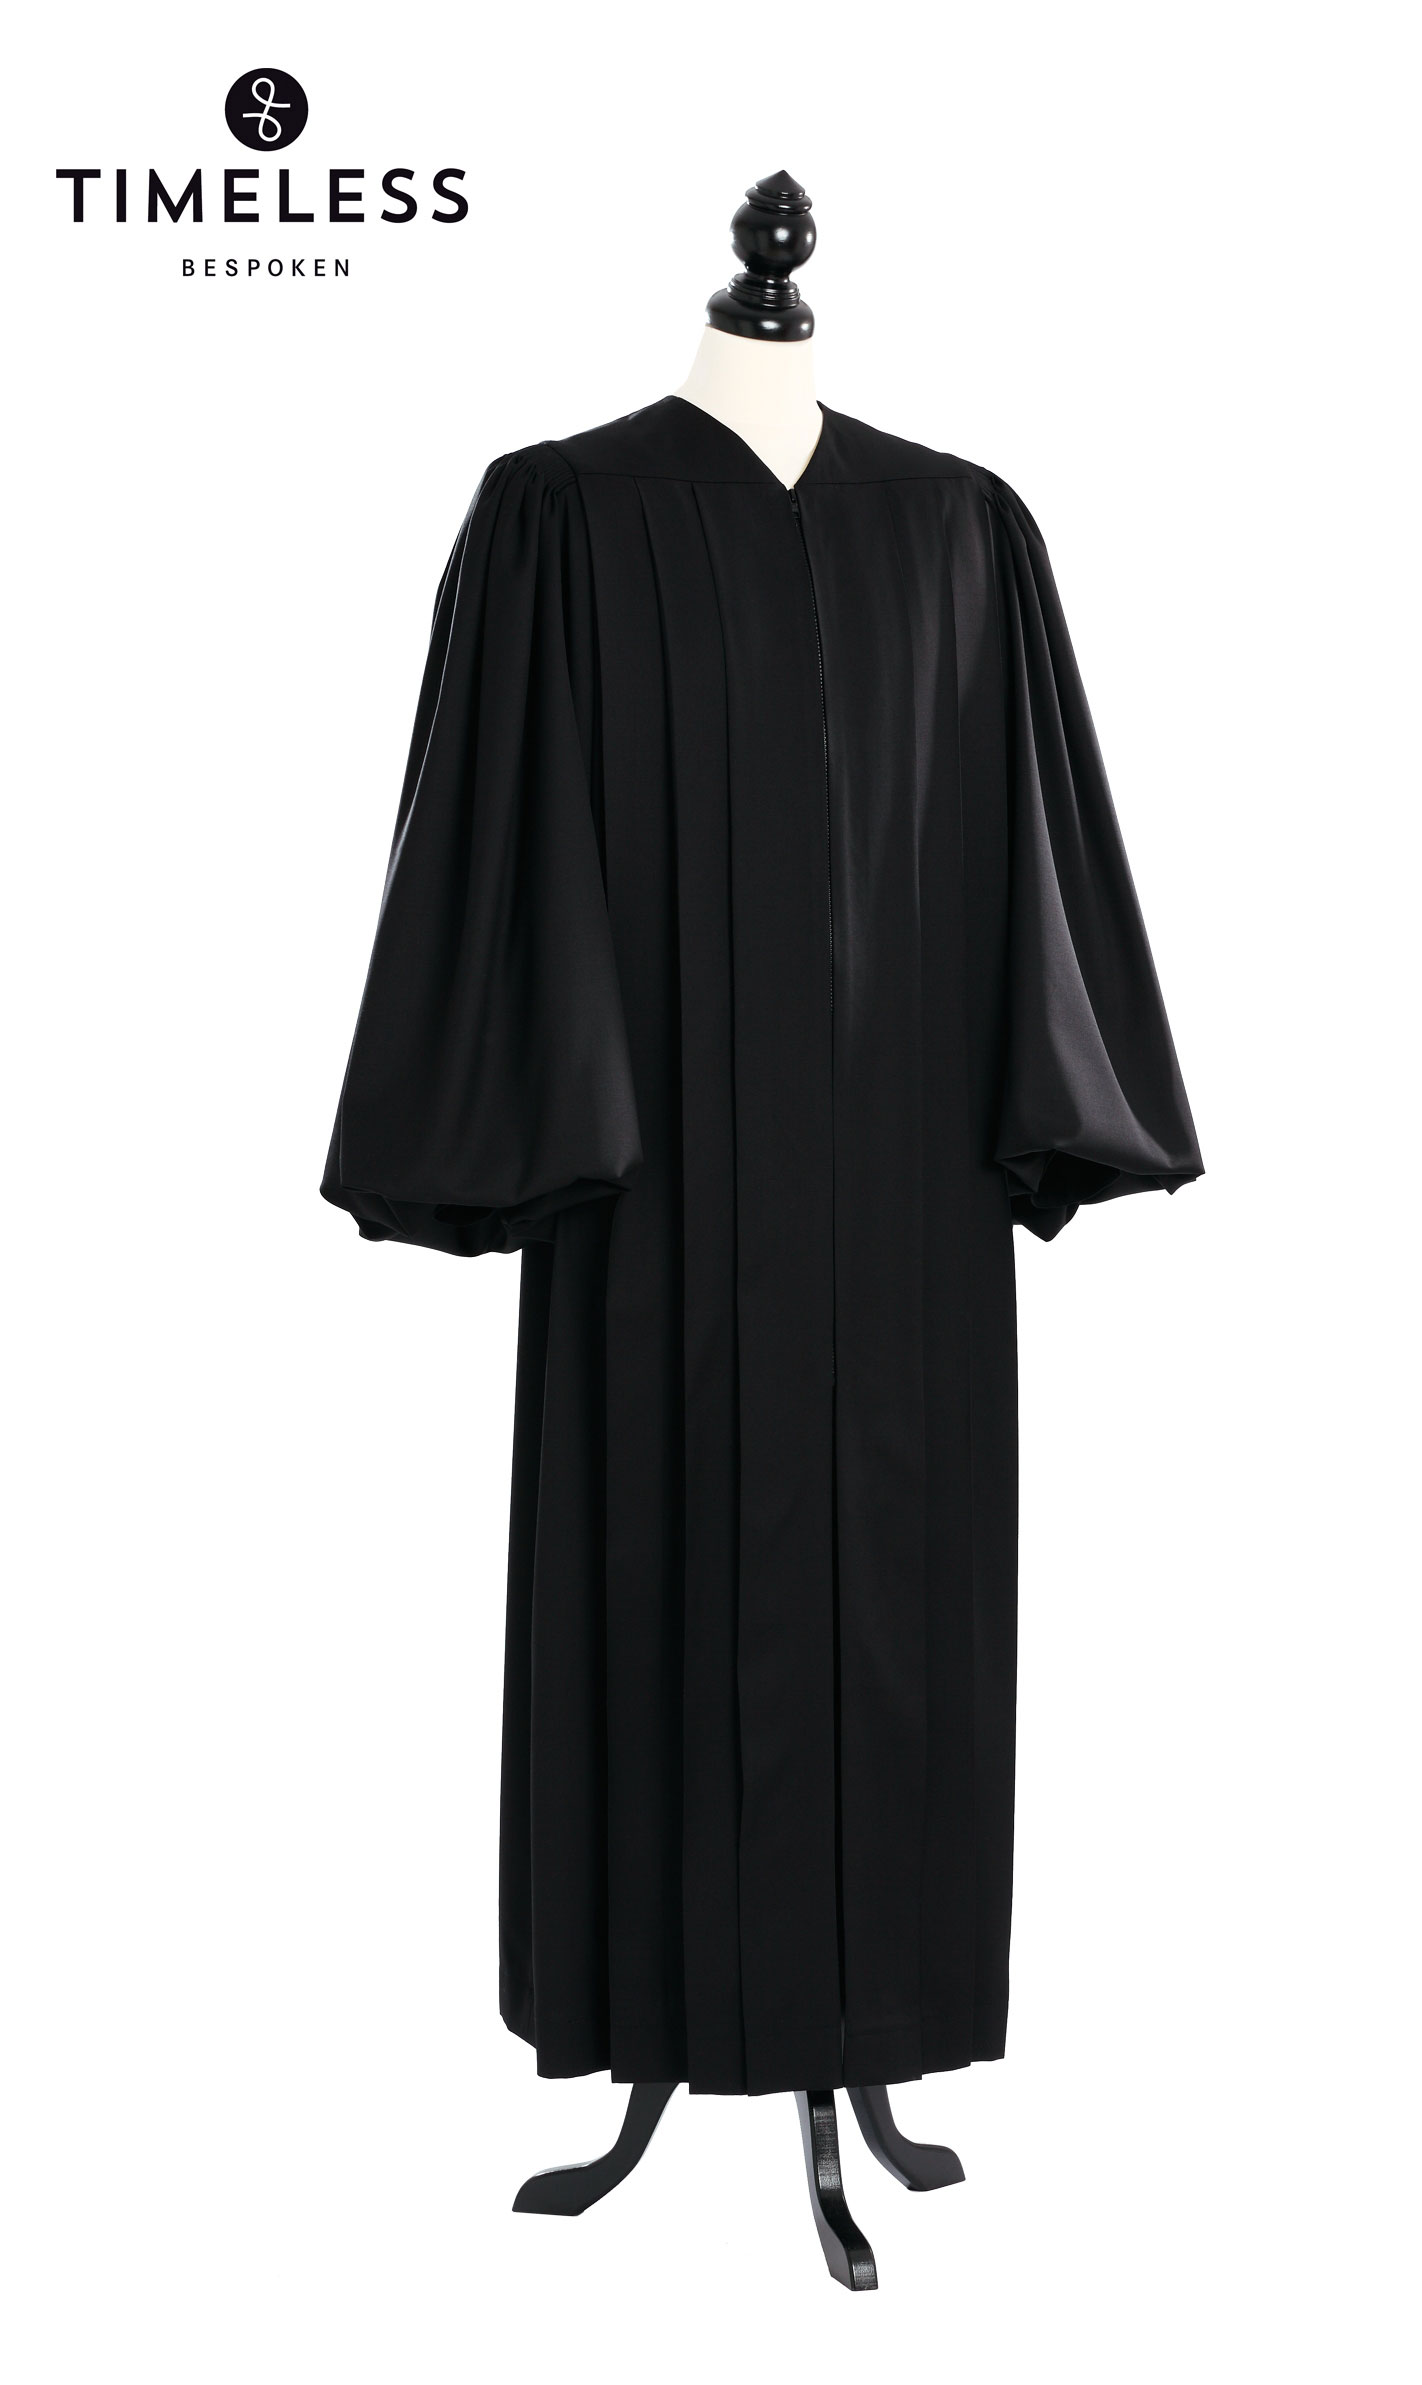 Geneva Clergy Talar, TIMELESS silver wool